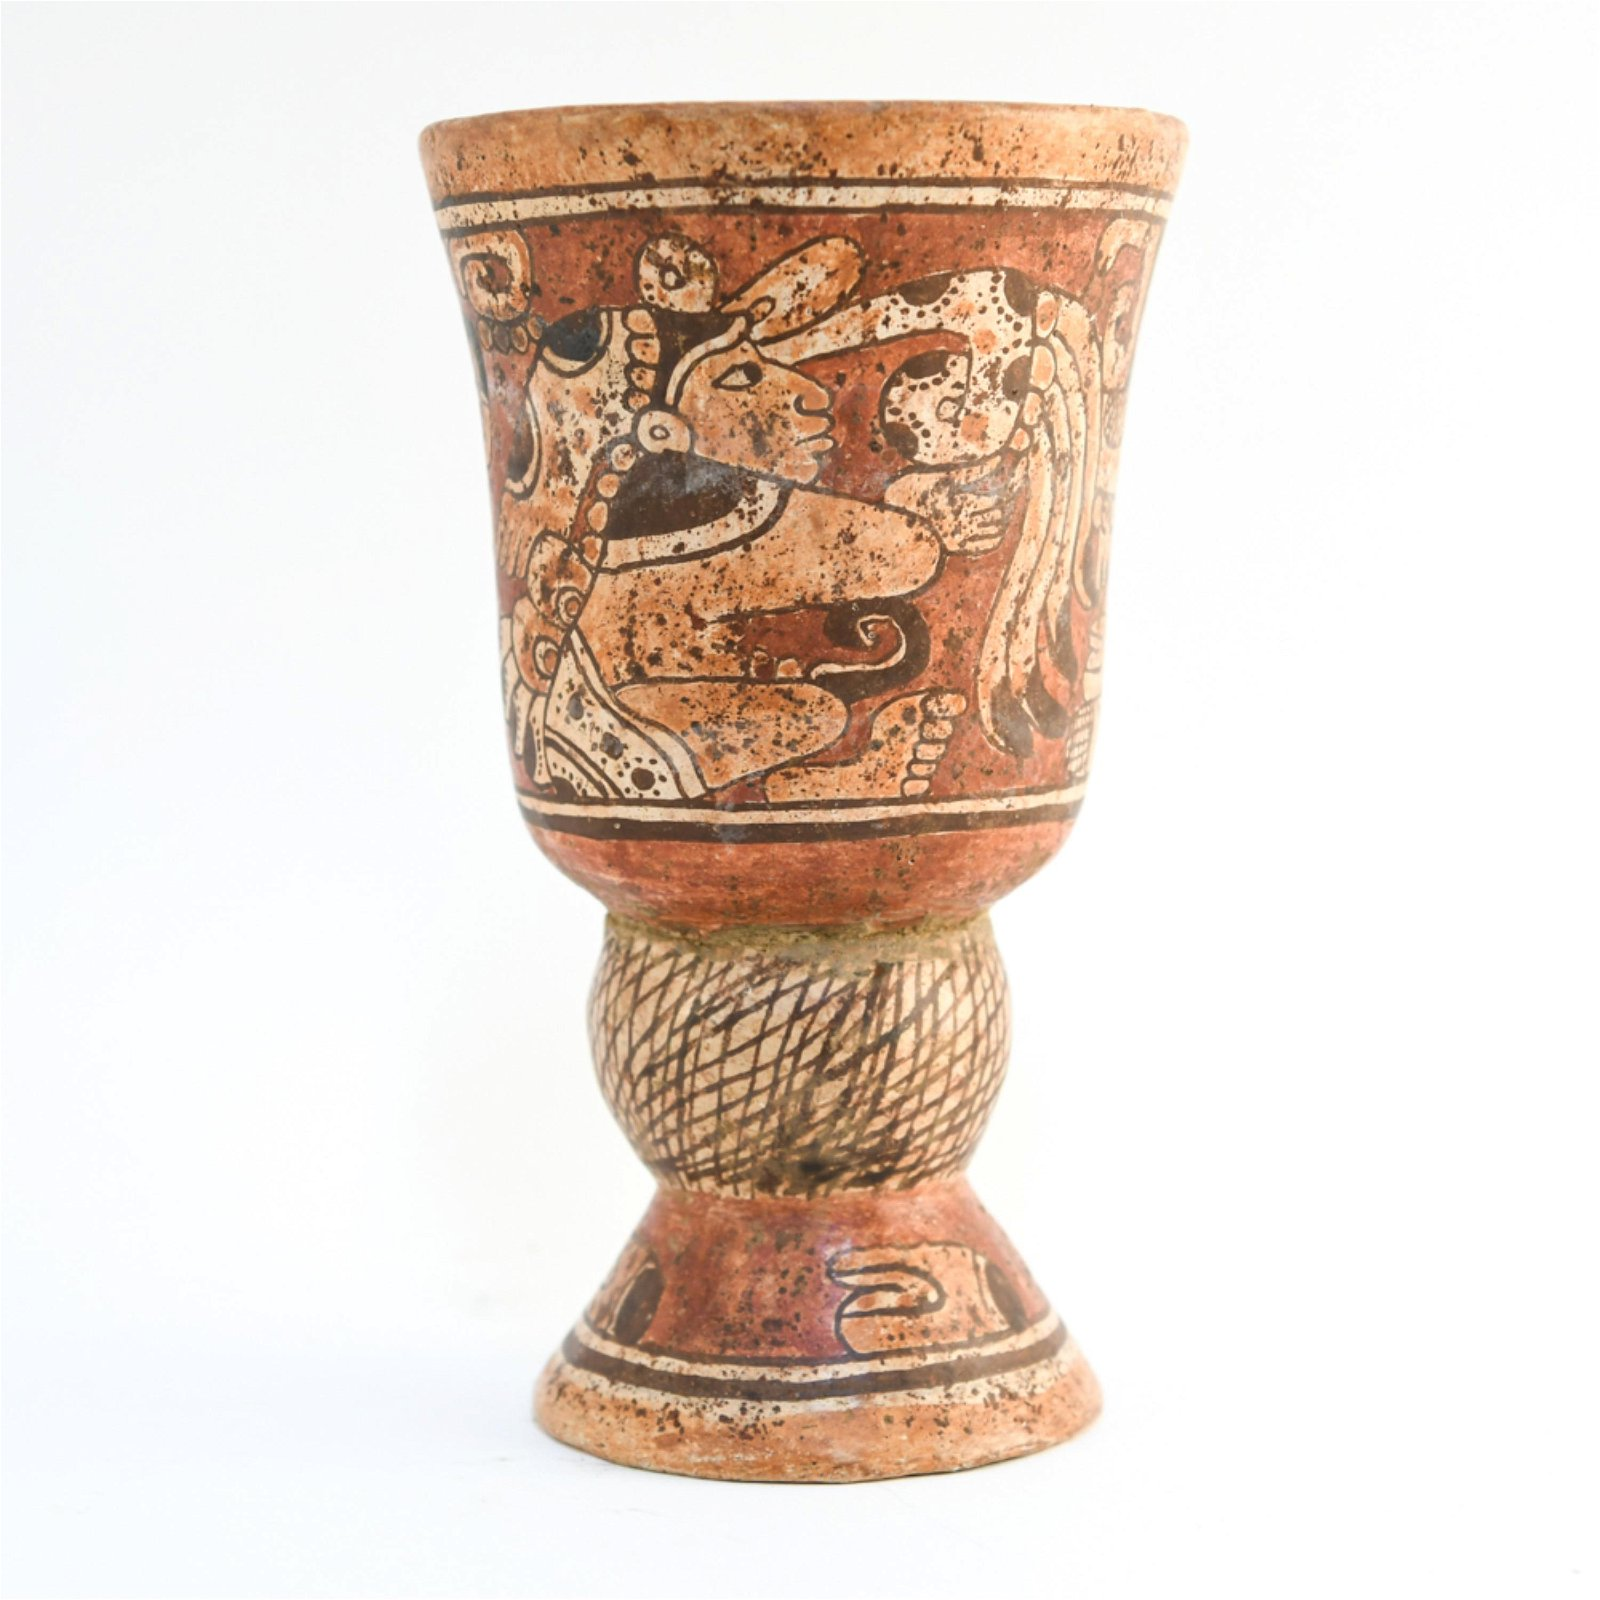 MAYAN STYLE CHALICE OR VASE